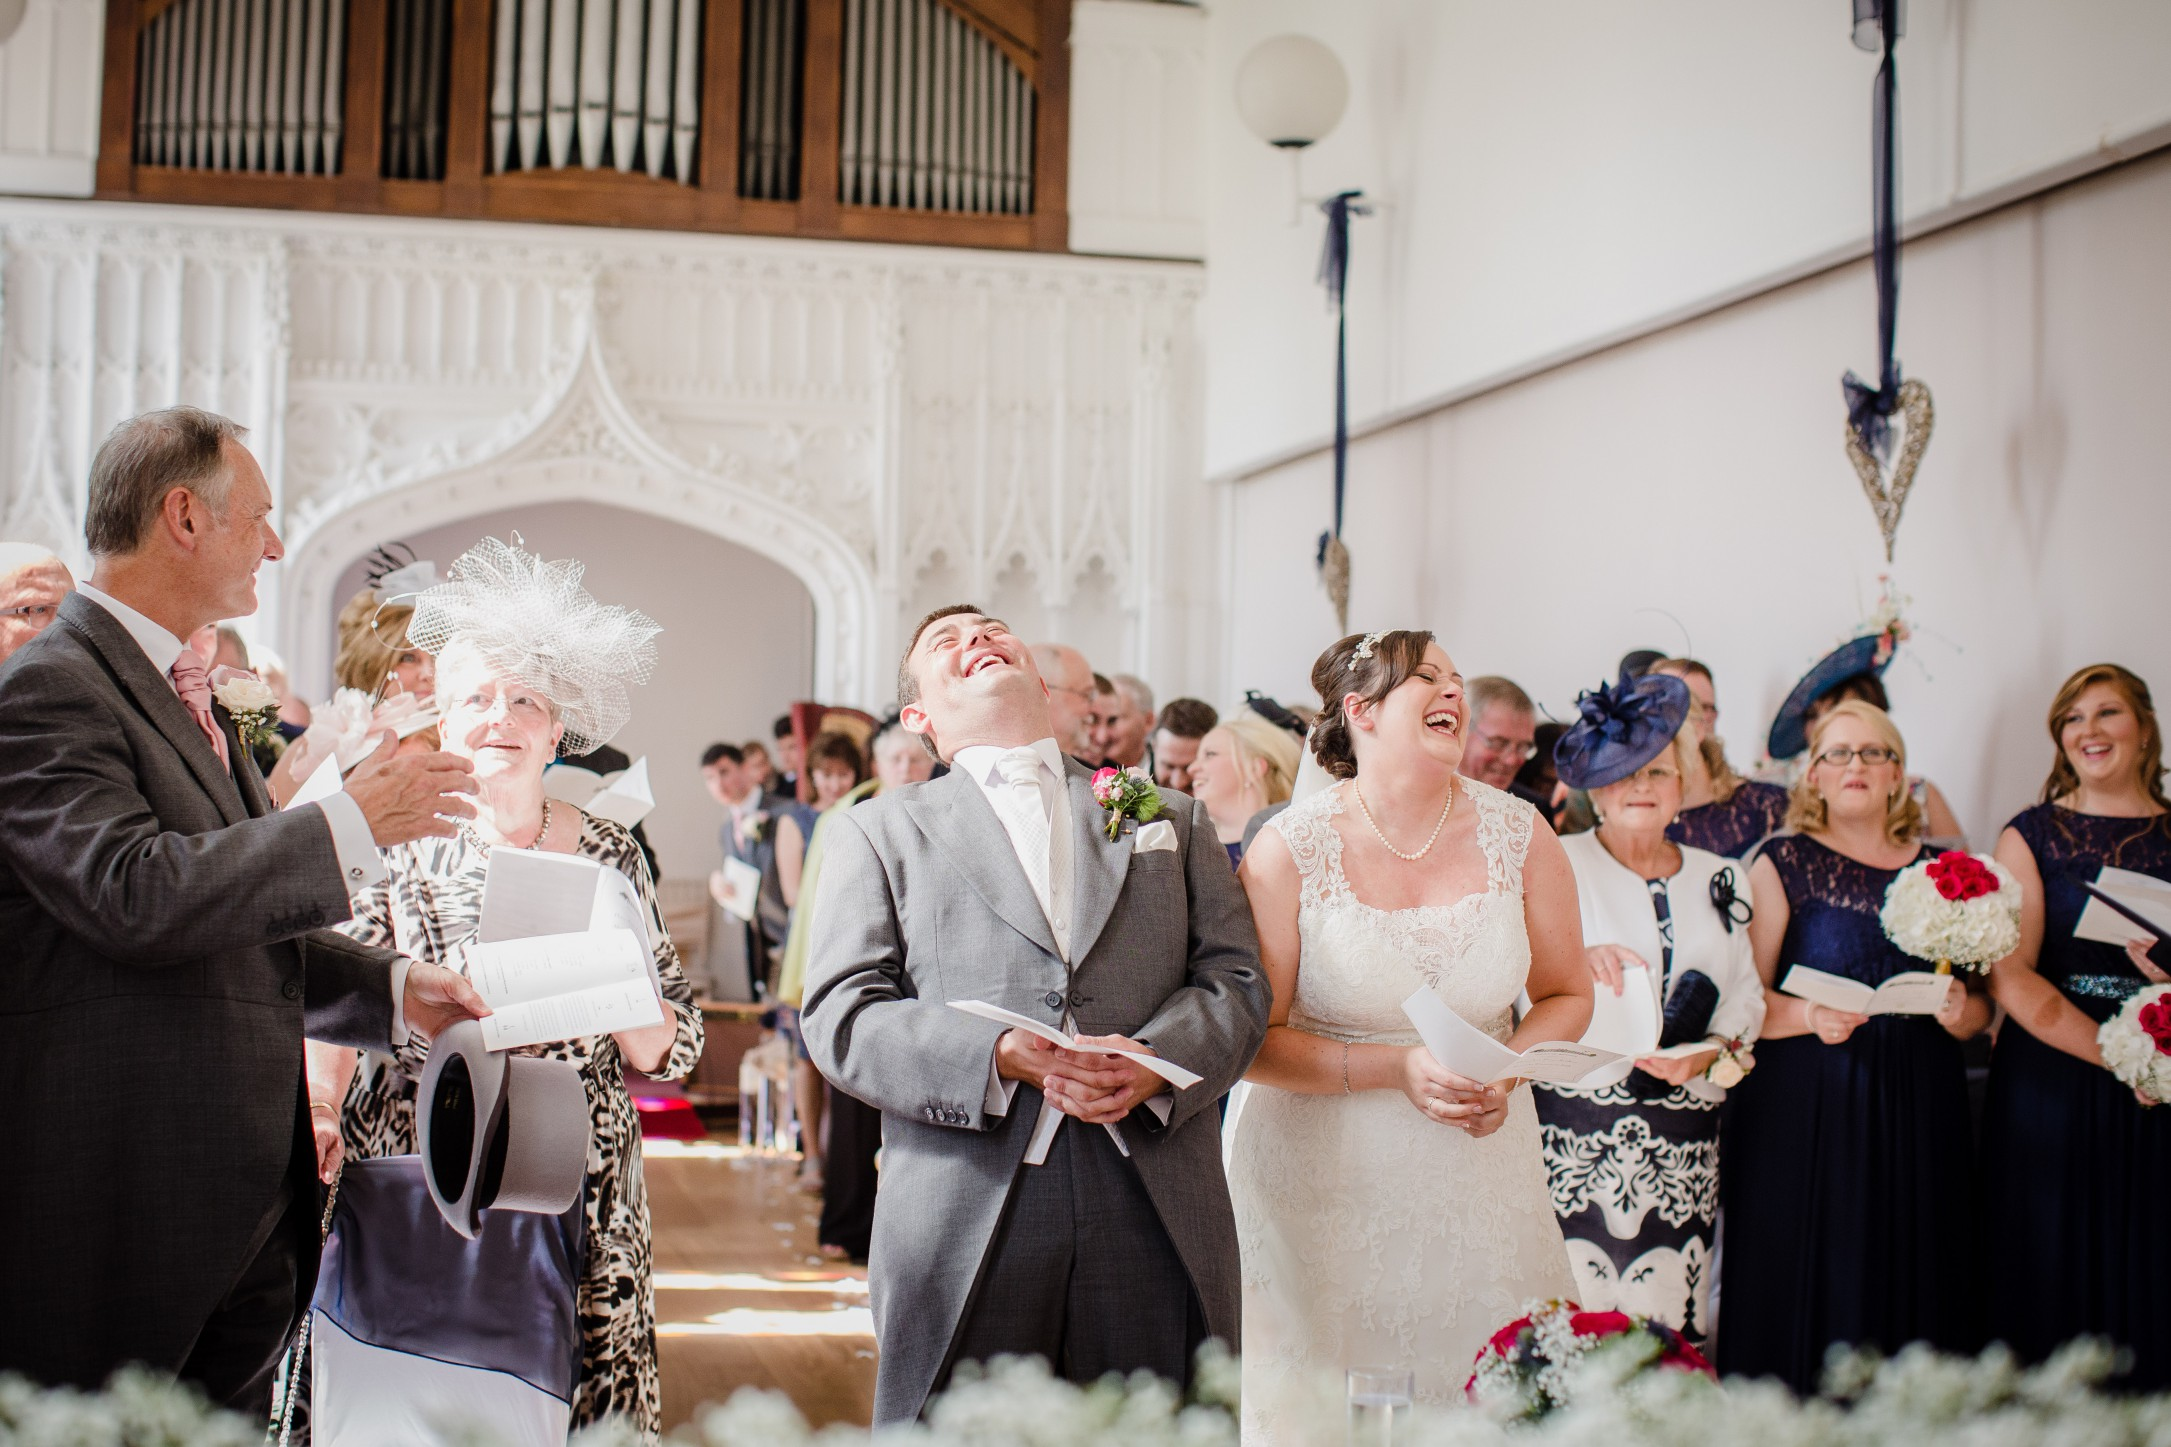 Cariad_Personal_Ceremonies_-_Sarah_Salotti_Photography_-_alex_and_claire_laughing_-_celebrant_wedding